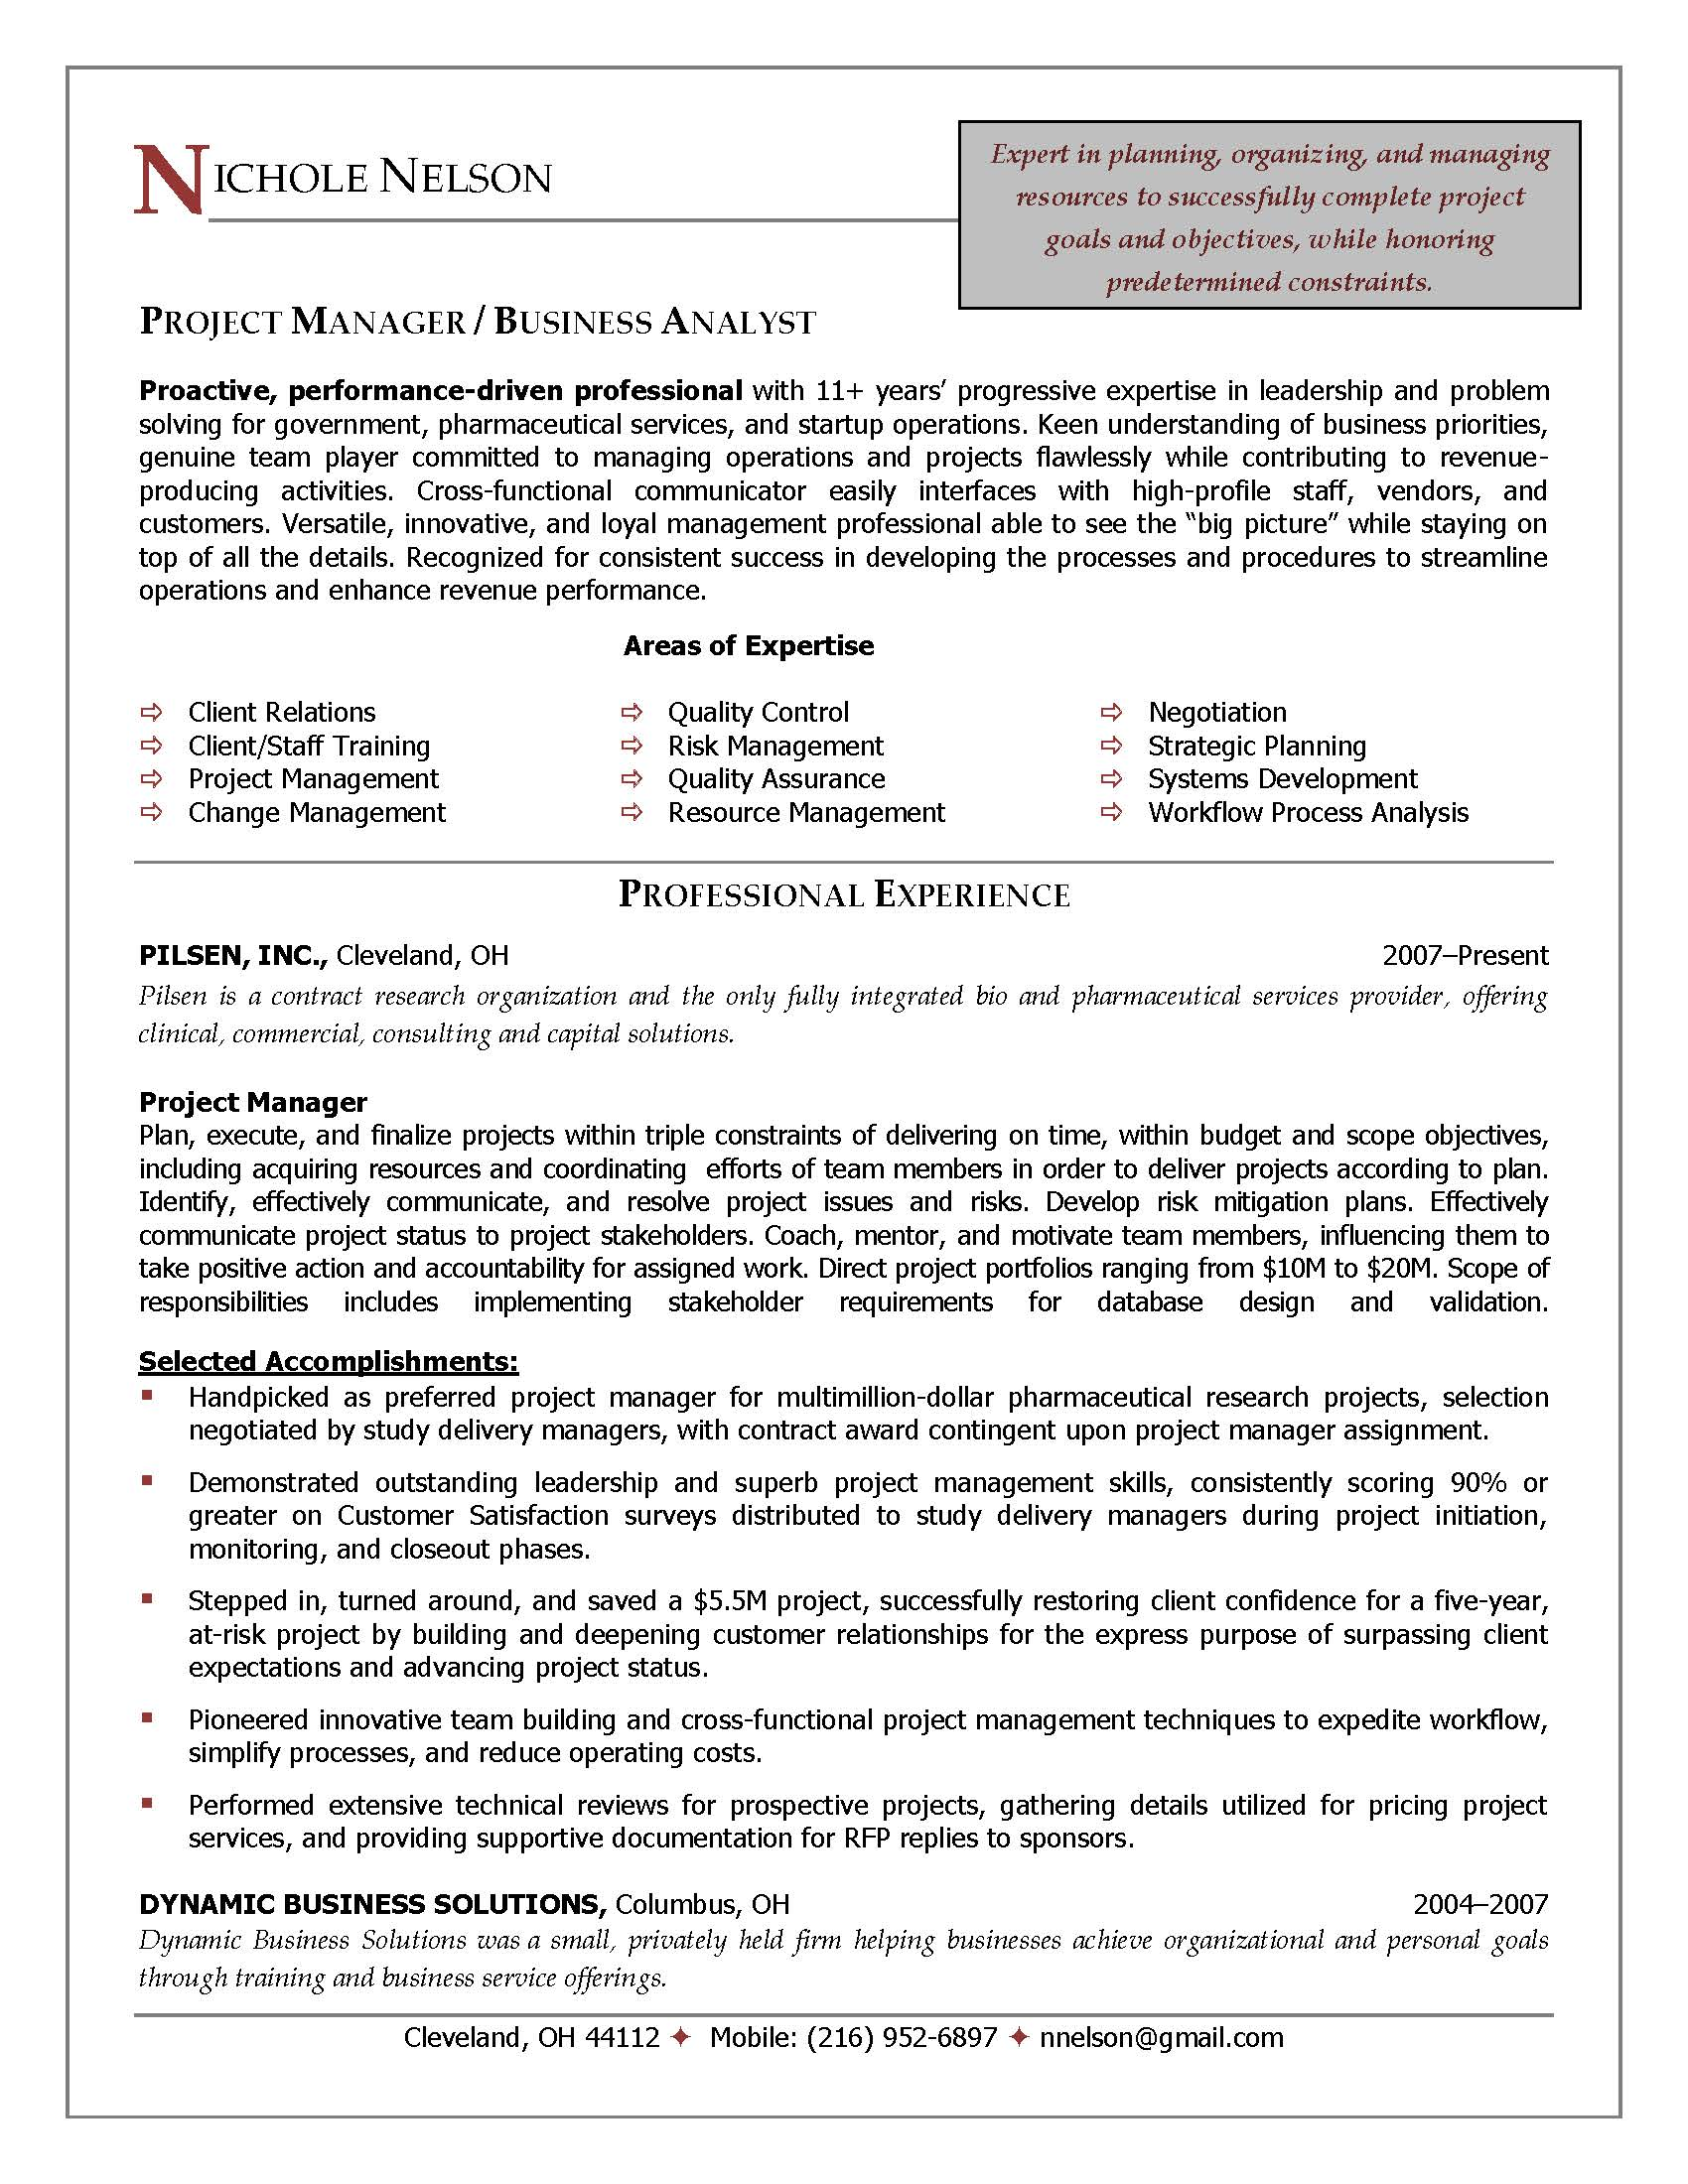 project manager resume sample provided by elite resume writing services - Sample Project Manager Resumes